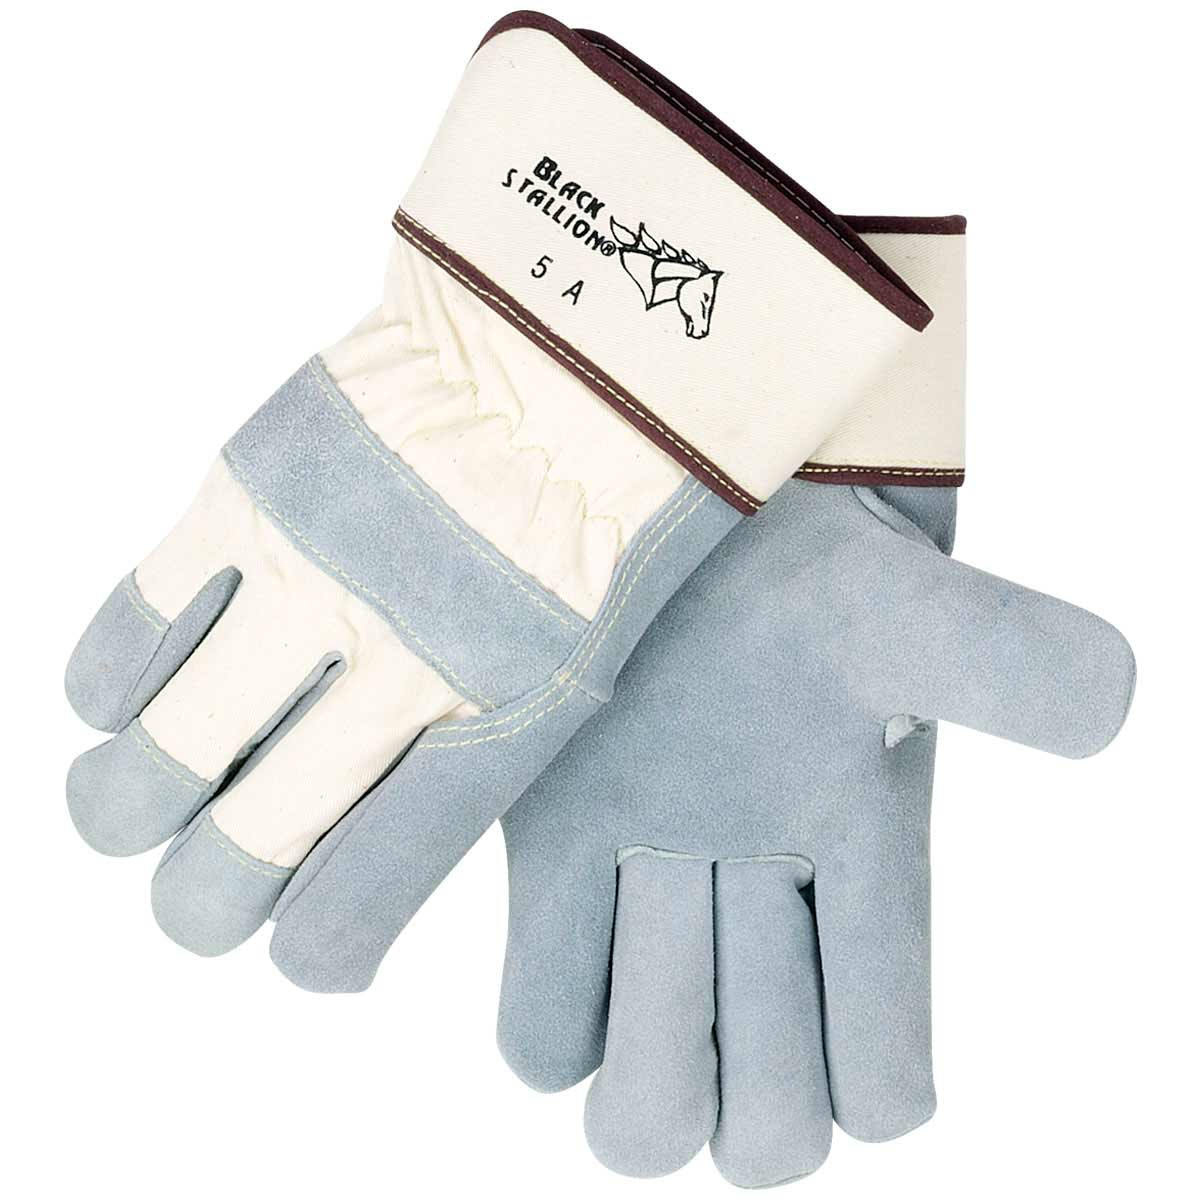 SIDE SPLIT COWHIDE - STRAP BACK PREMIUM LEATHER PALM WORK GLOVES. Pack 12. Large. 5AL